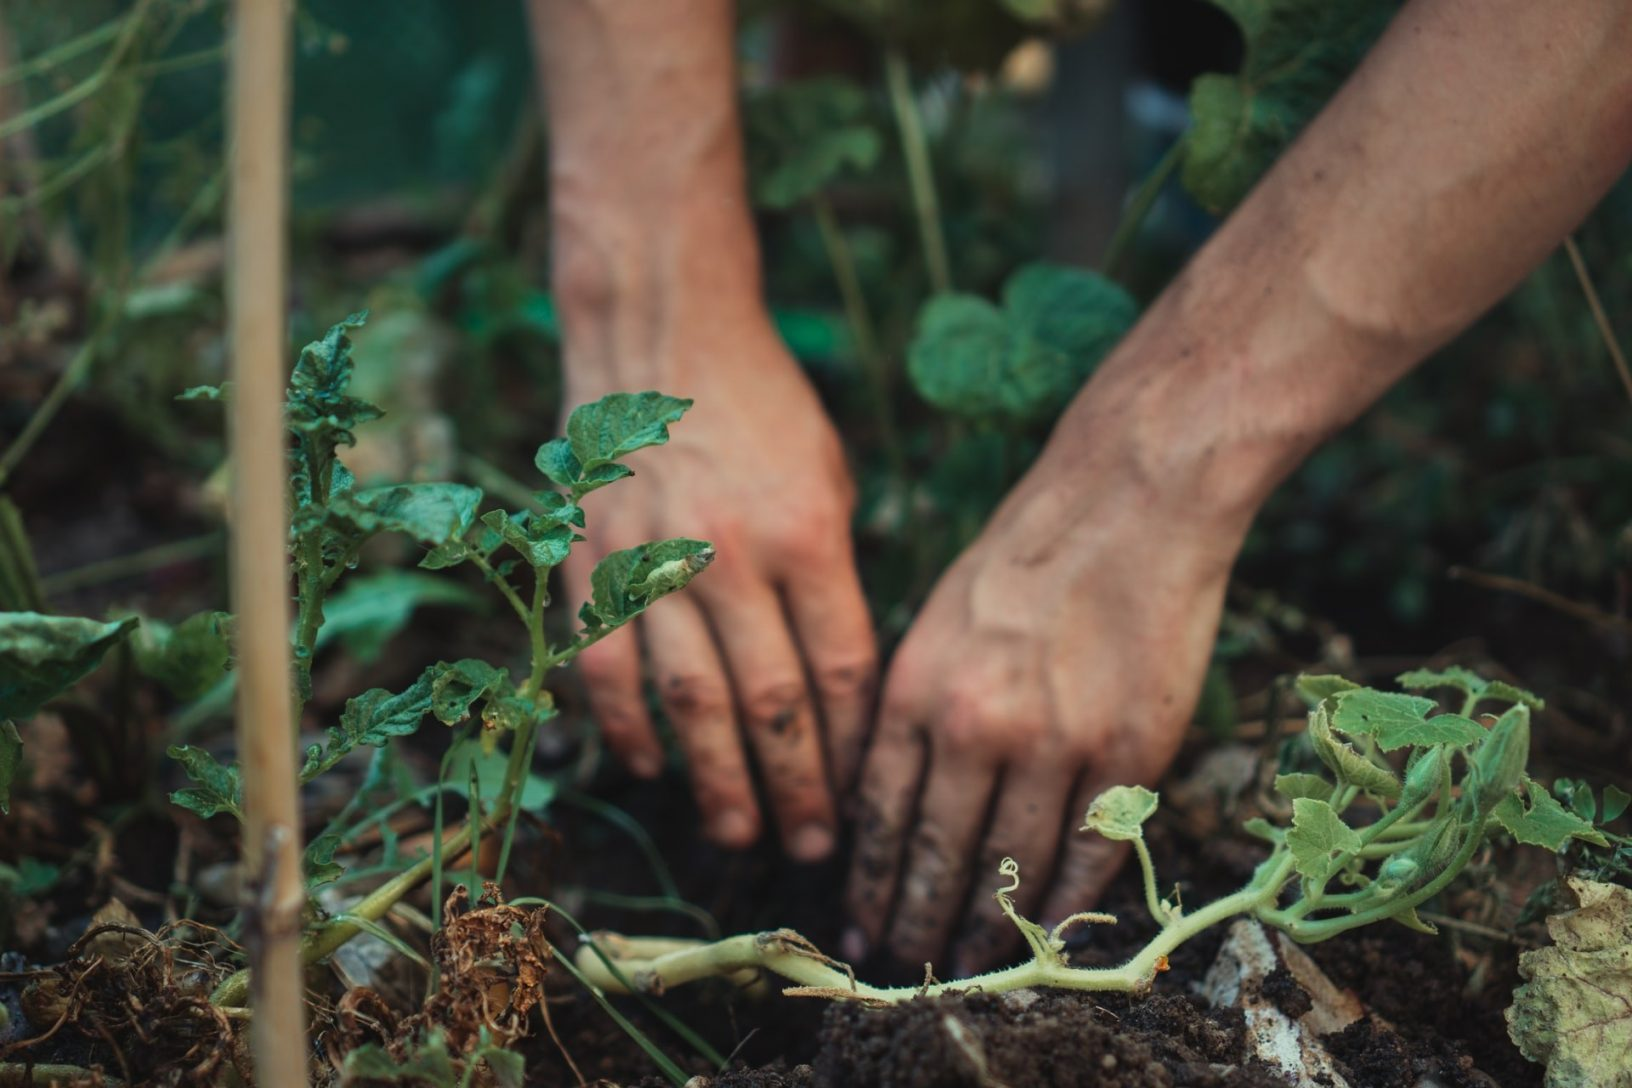 Gardening as an occupation planting